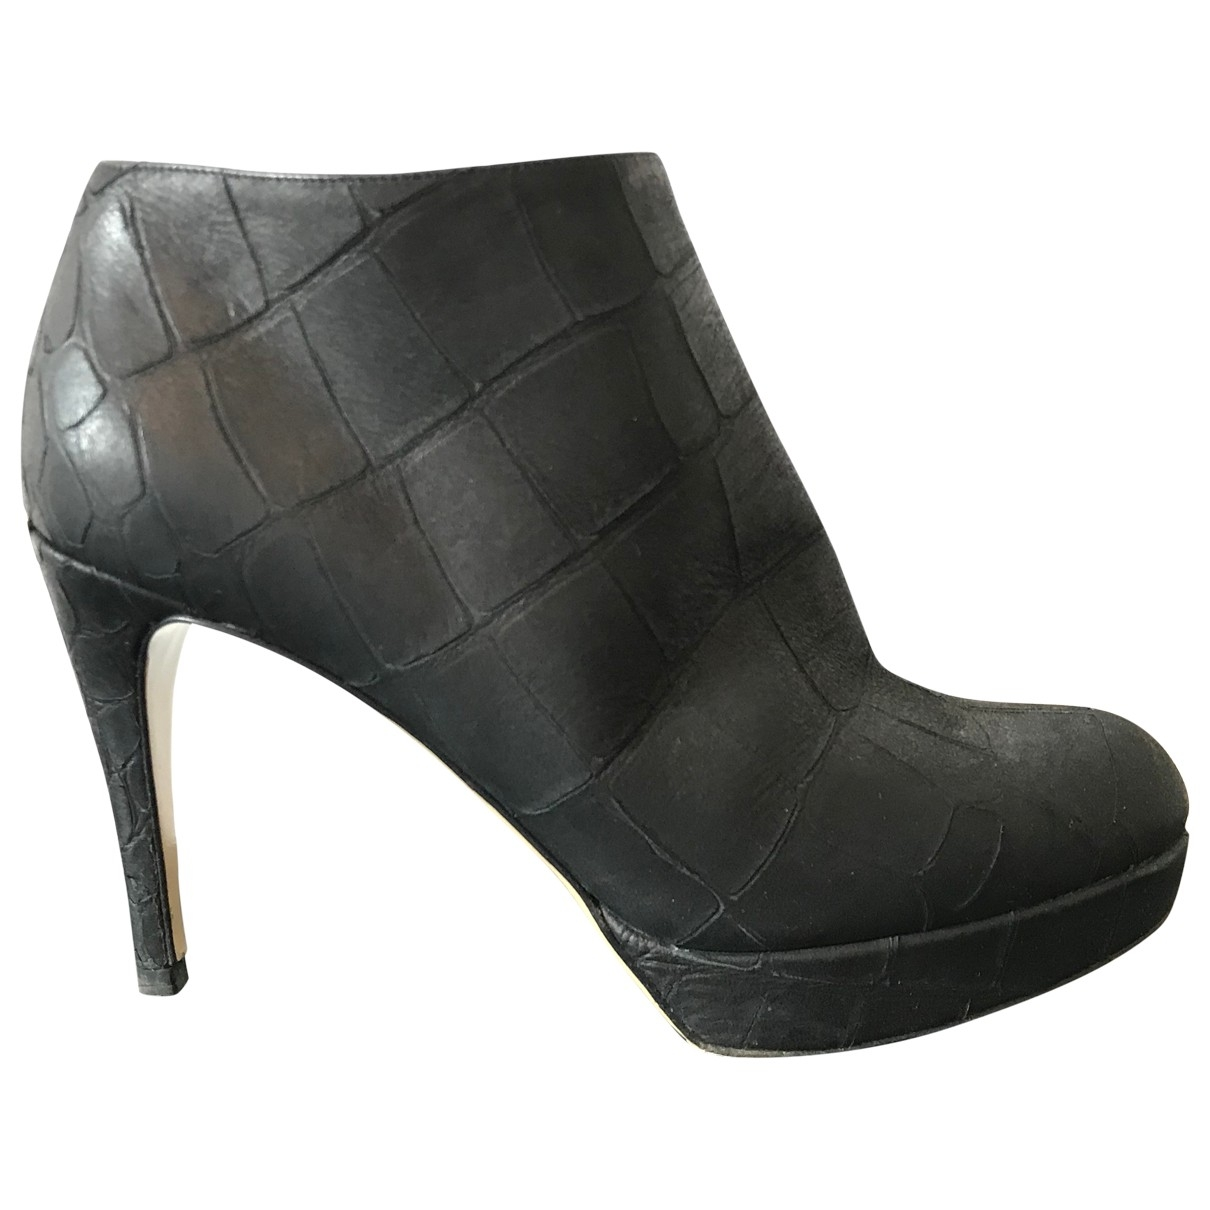 Emporio Armani \N Black Leather Ankle boots for Women 37 EU